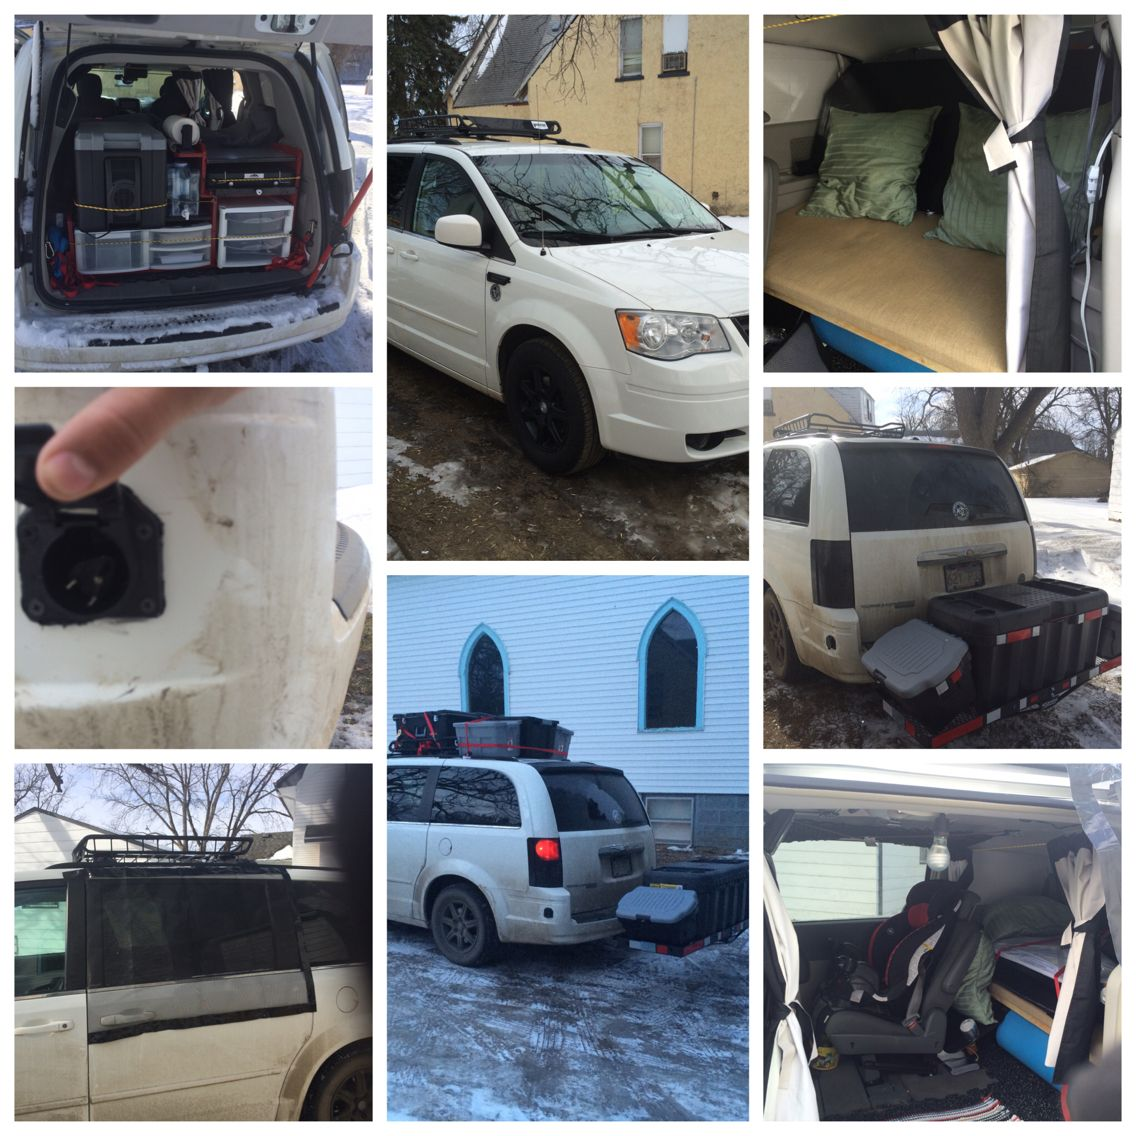 2008 Chrysler town and country minivan camper  My dream for